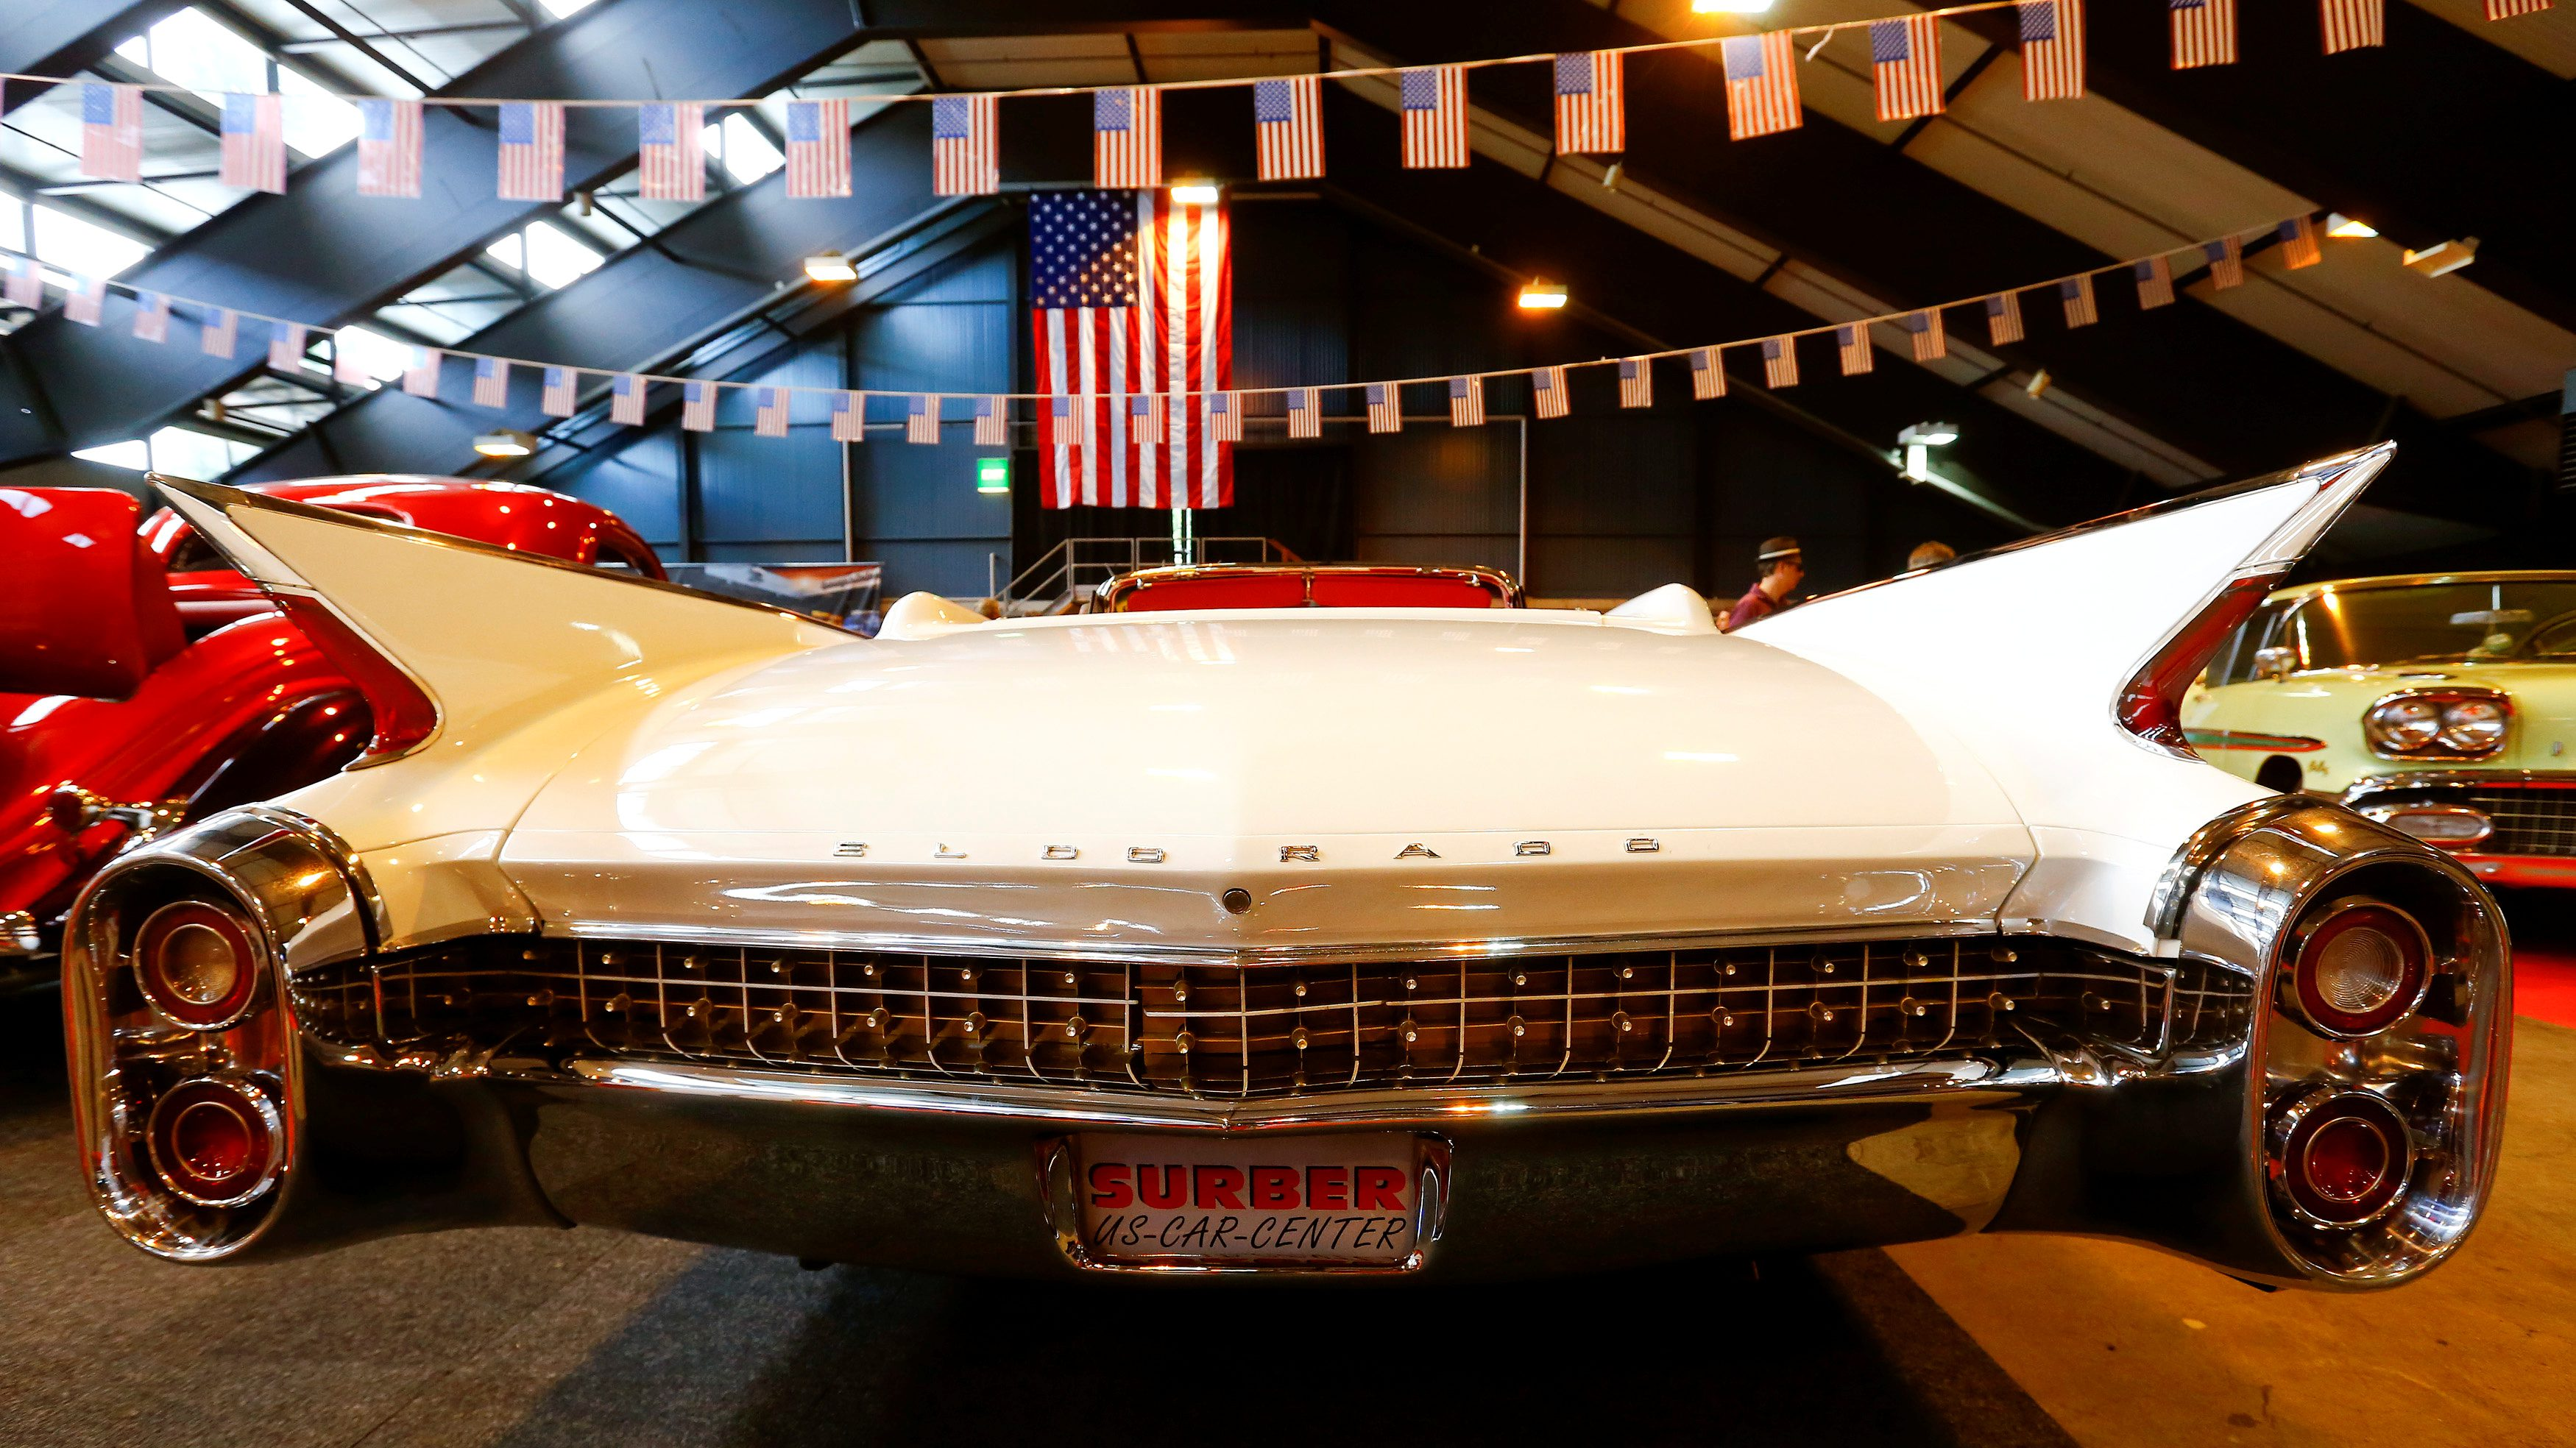 A 1960 Cadillac Eldorado Biarritz Cabriolet is offered for 185,000 Swiss Francs (189.902 dollars) at the Swiss Classic Car vintage automobile fair in Luzern, Switzerland May 28, 2017. Picture taken on May 28, 2017.  - RC1C86811CC0